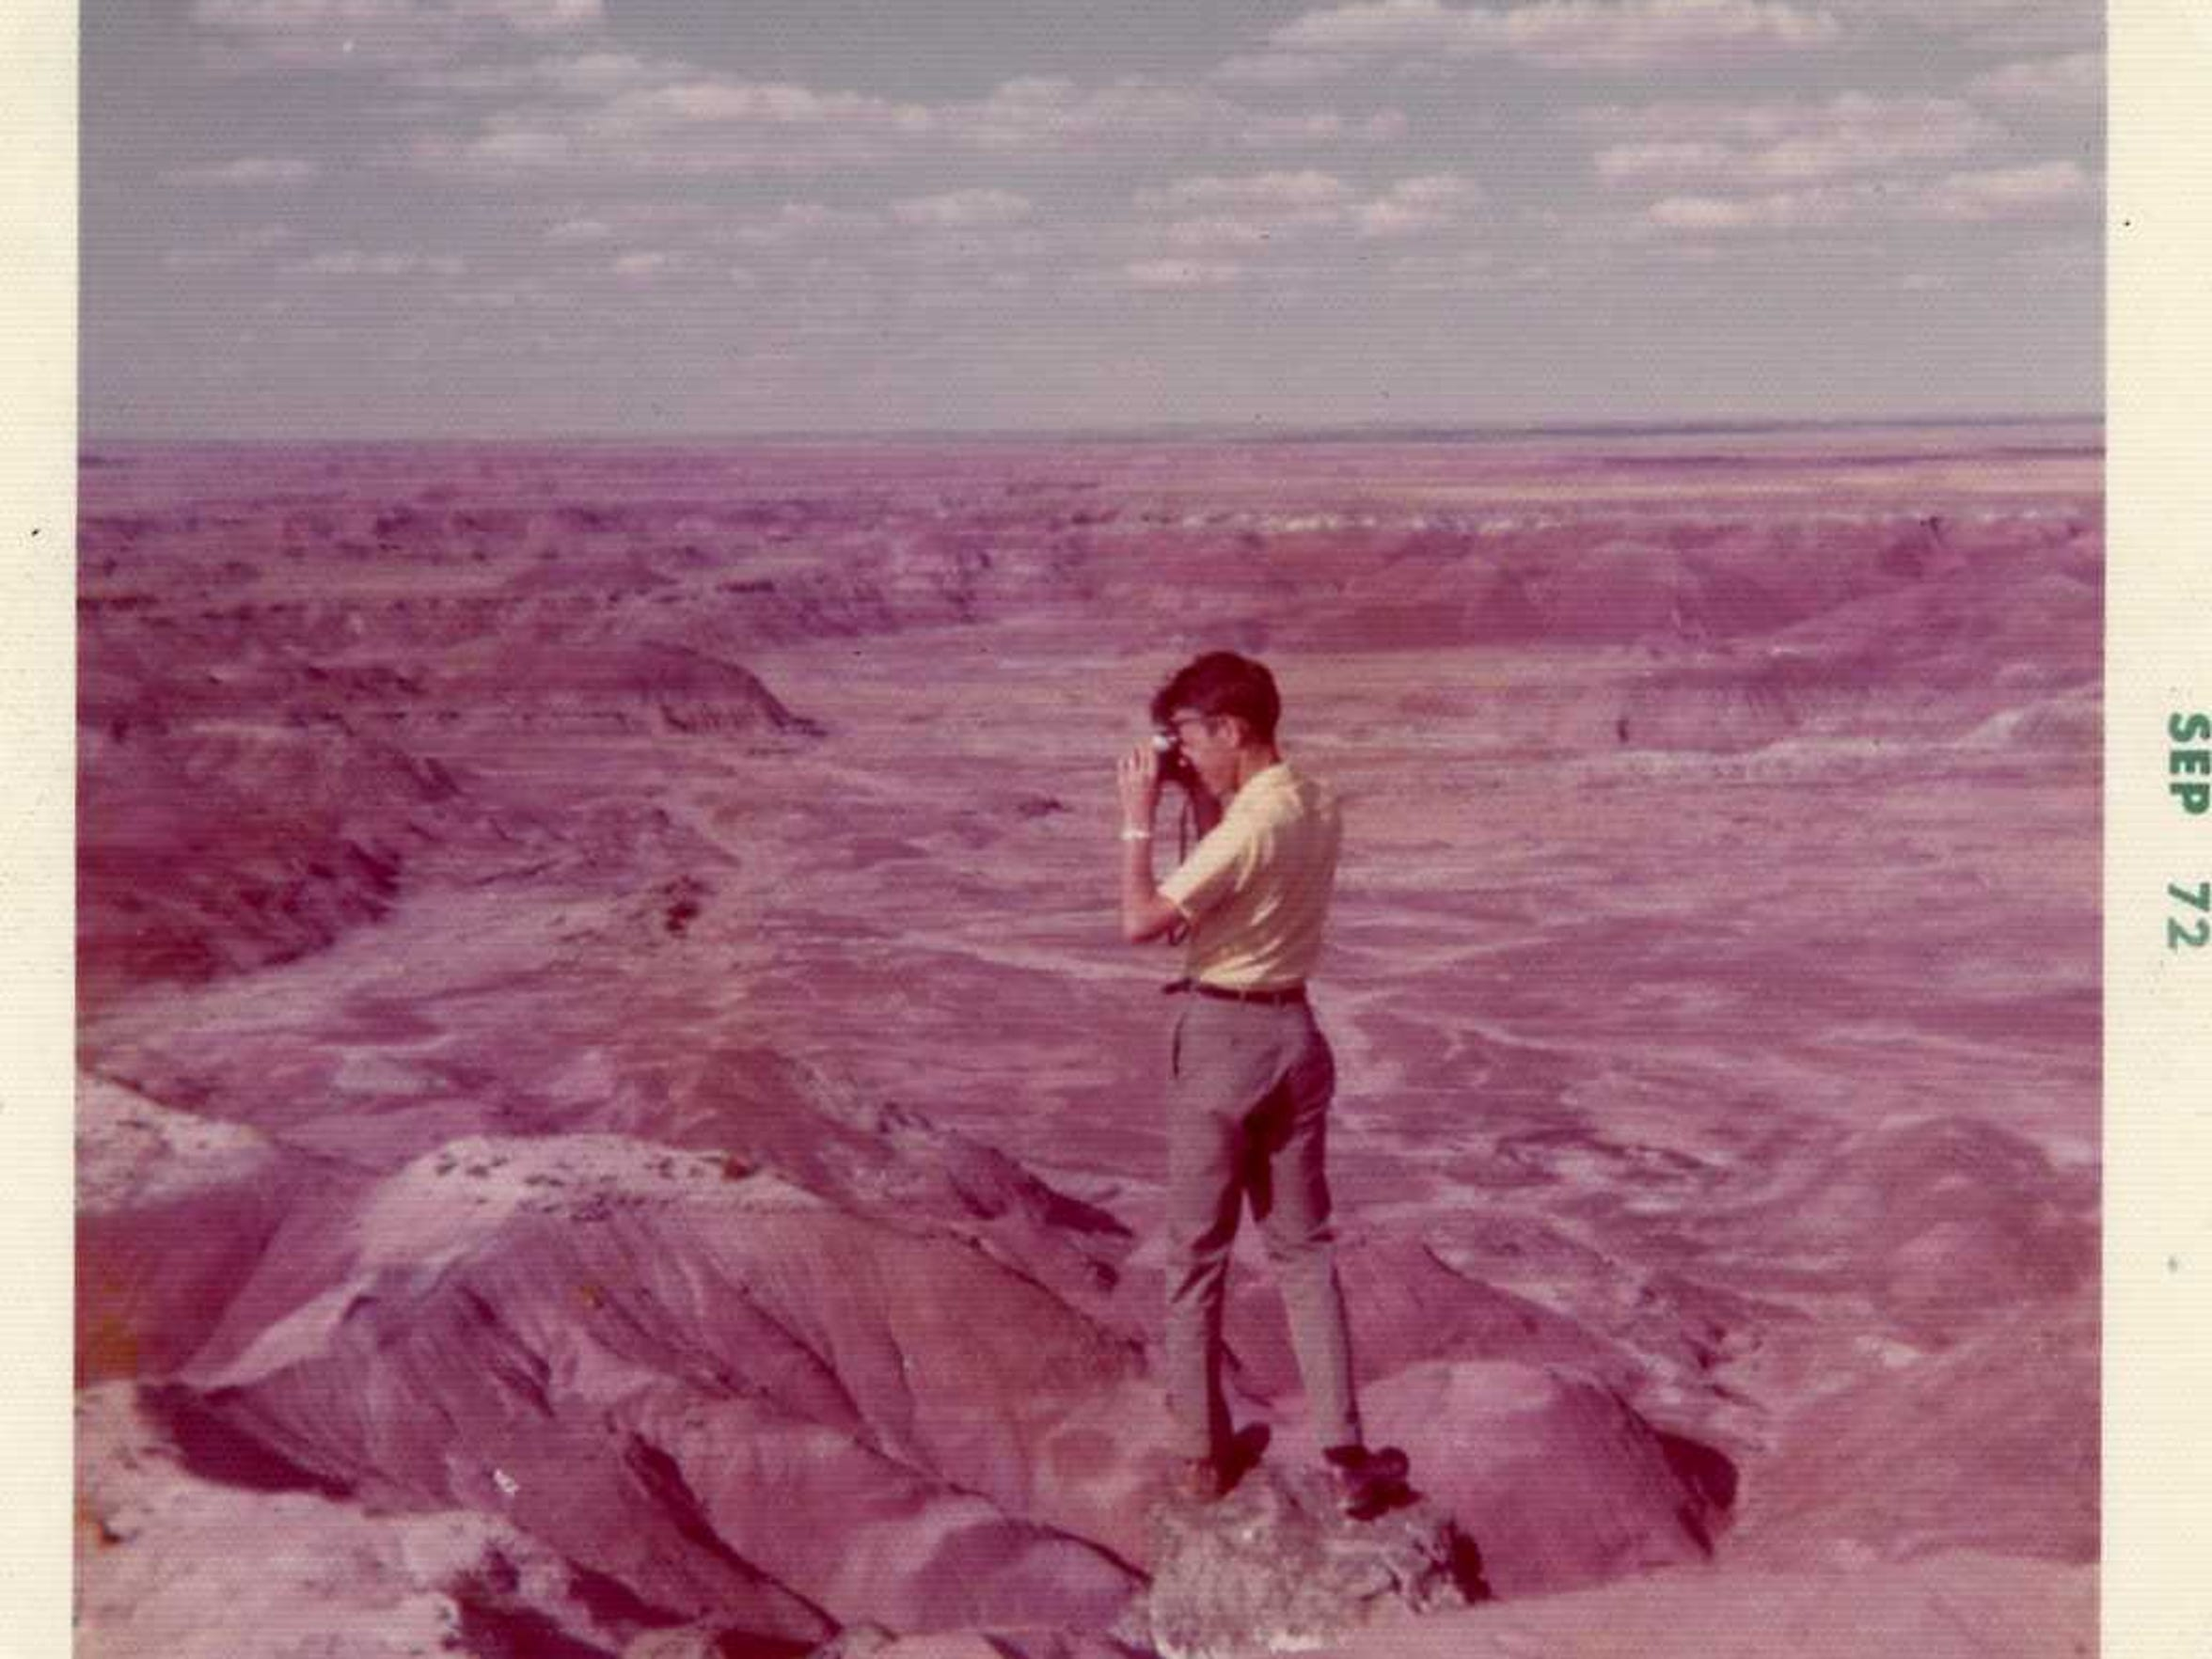 Kujawa takes slides of Painted Desert, Arizona, in